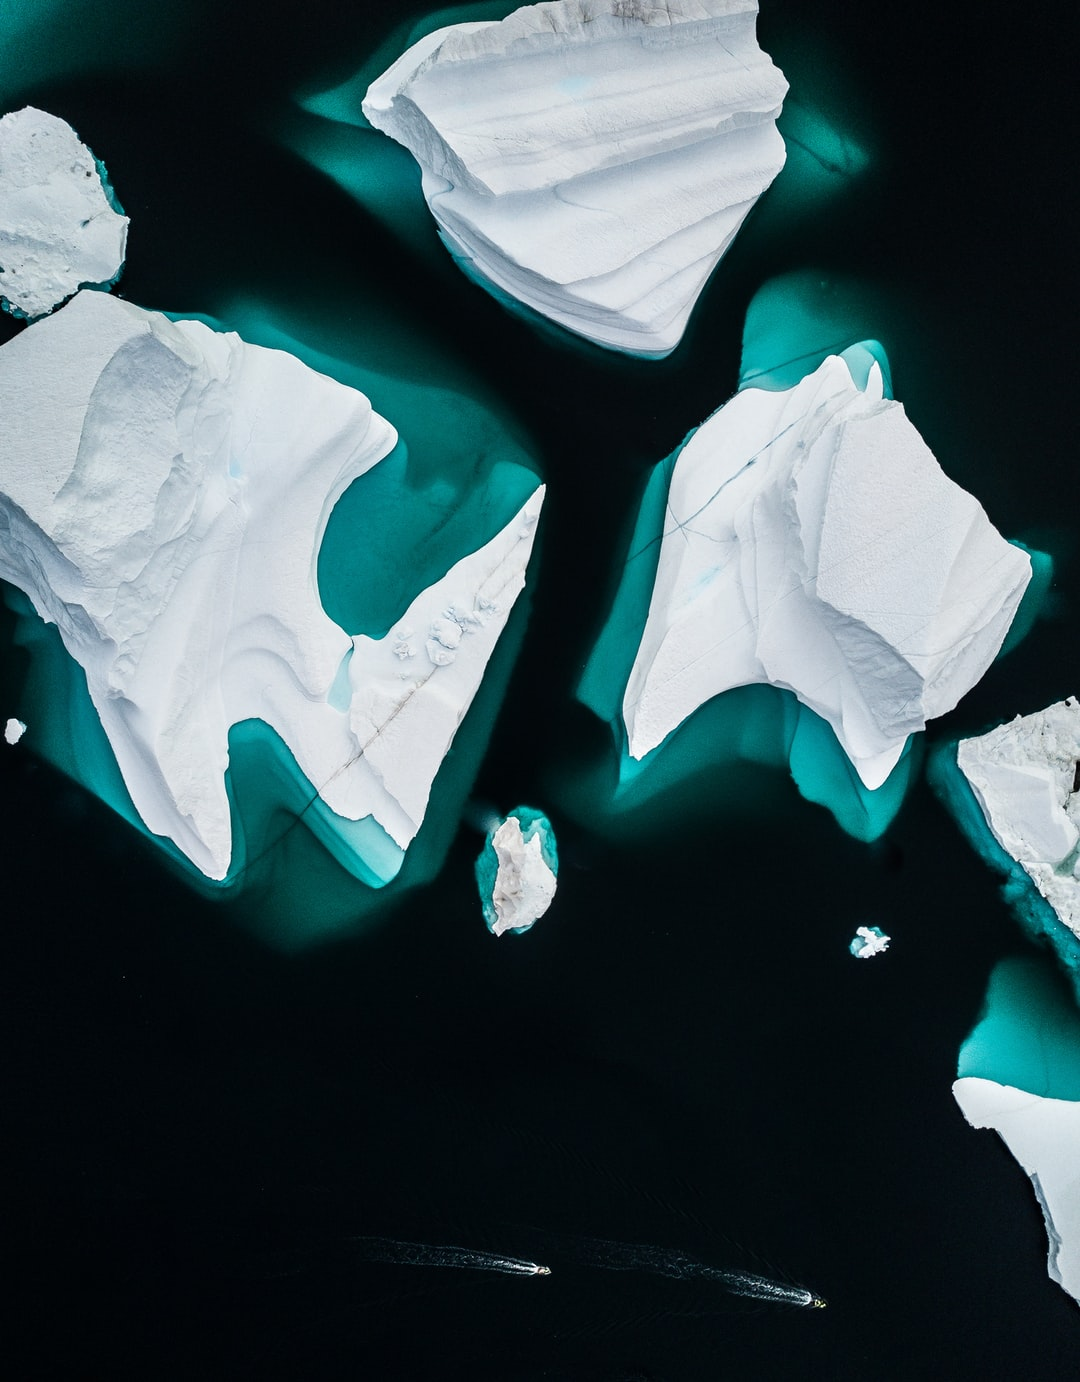 Iceberg at Scoresby Sund, Greenland from above